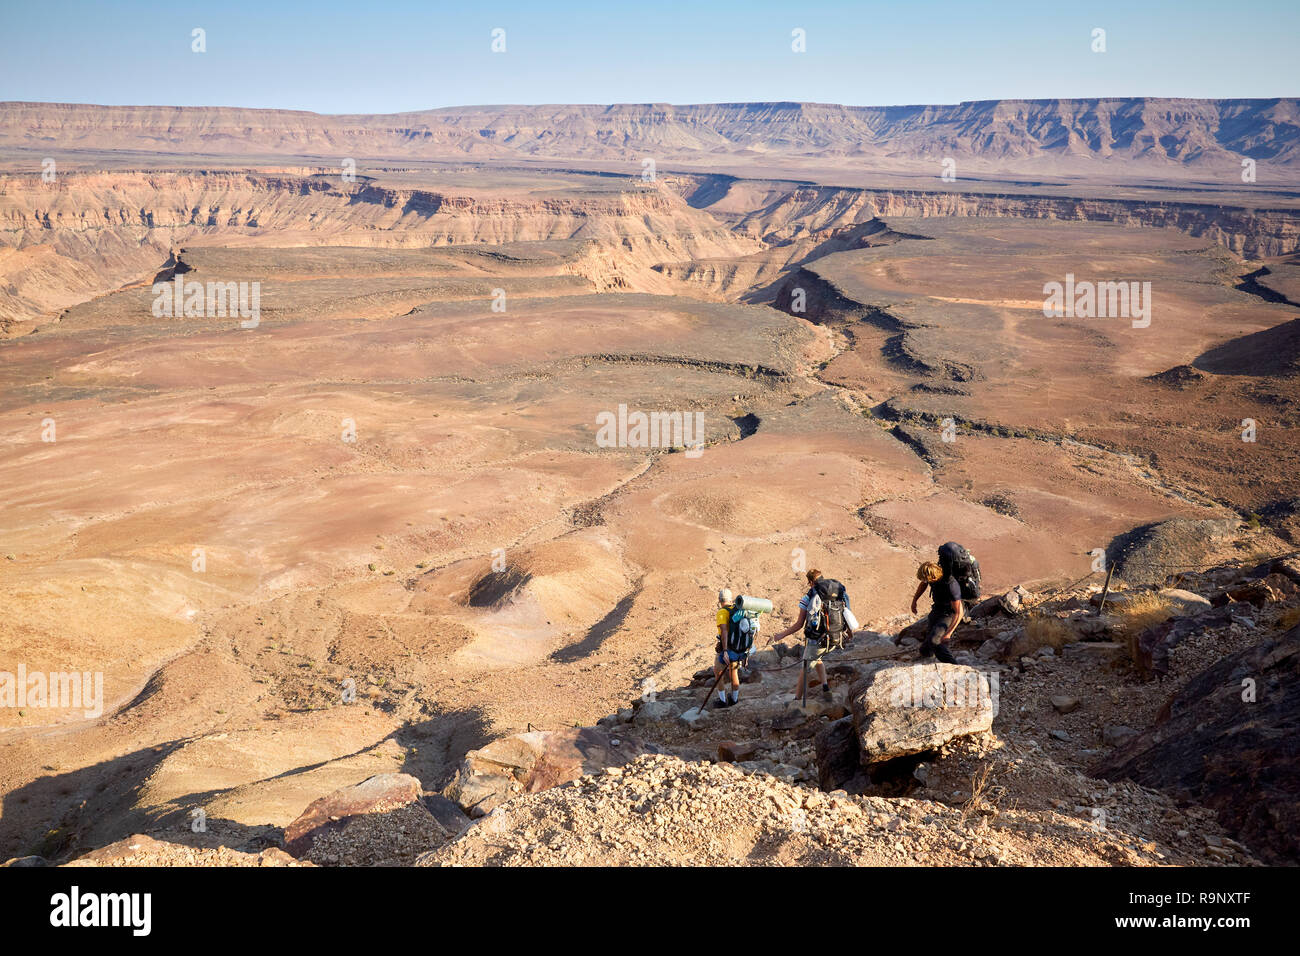 Hikers asdnding into a Fish River Canyon Hiking trekking hikers trekkers in Fish River Canyon, Namibia, Africa - Stock Image